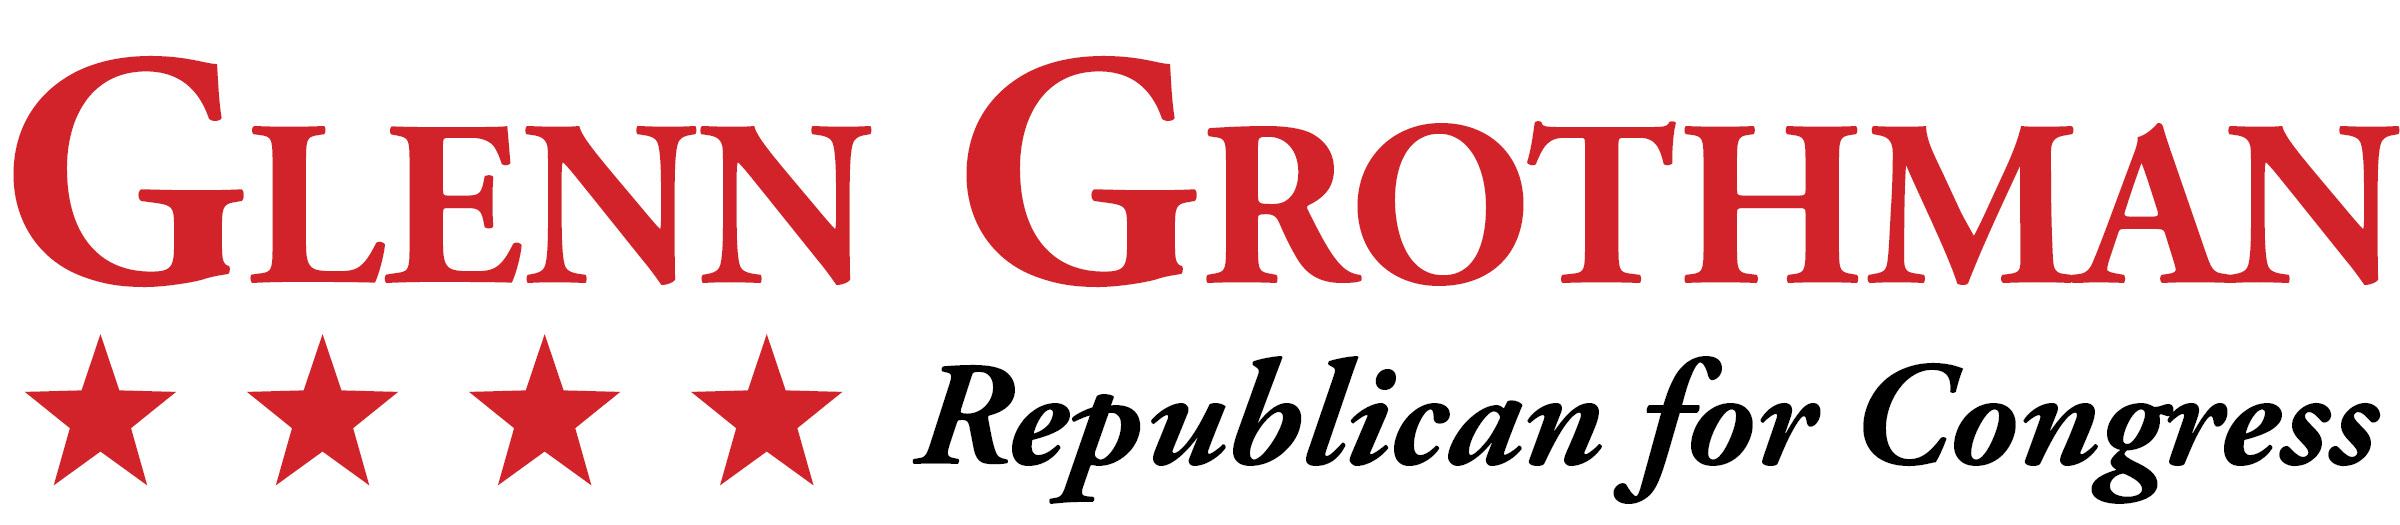 Glenn Grothman - Republican for Congress